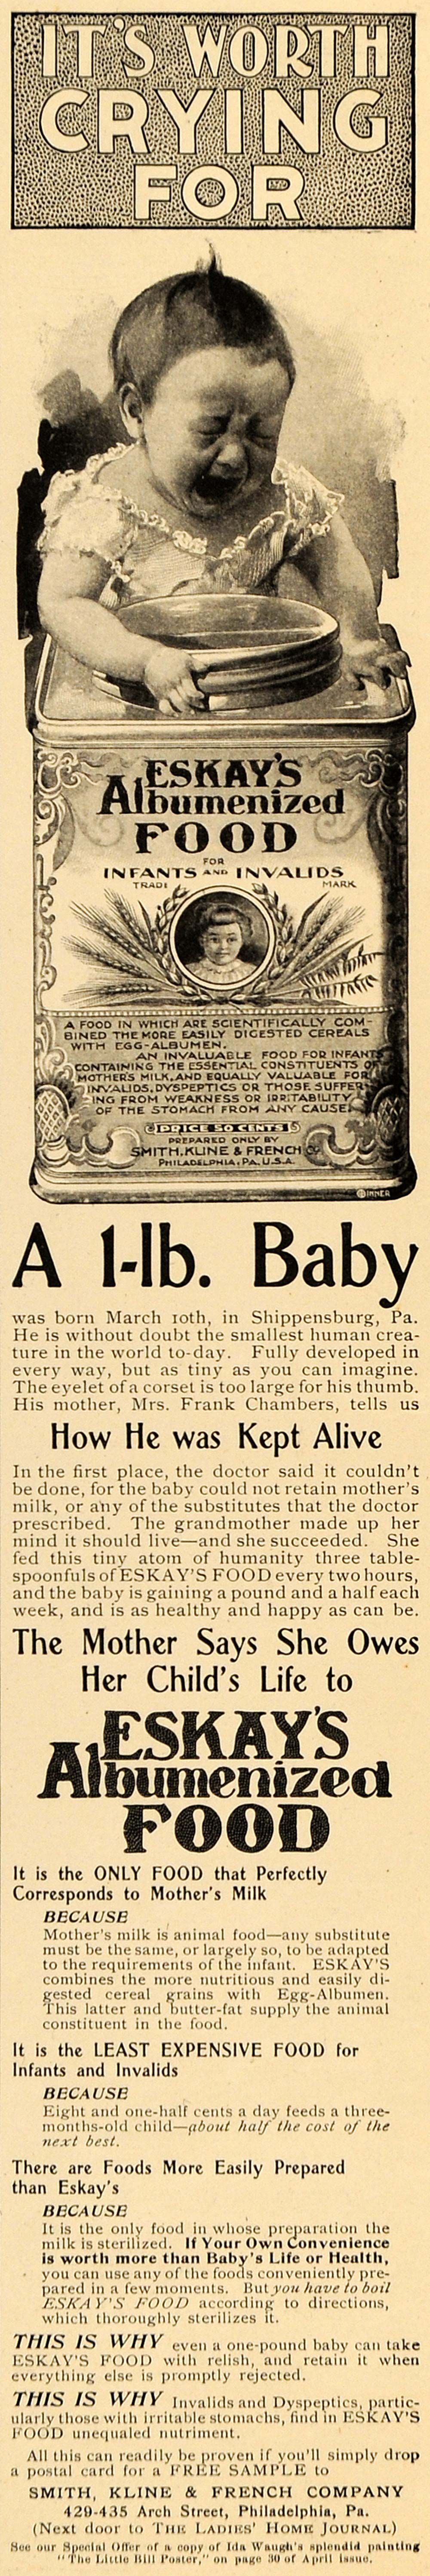 1898 Ad Eskay Albumenized Food Smallest Baby Child Life Formula Chambers LHJ6